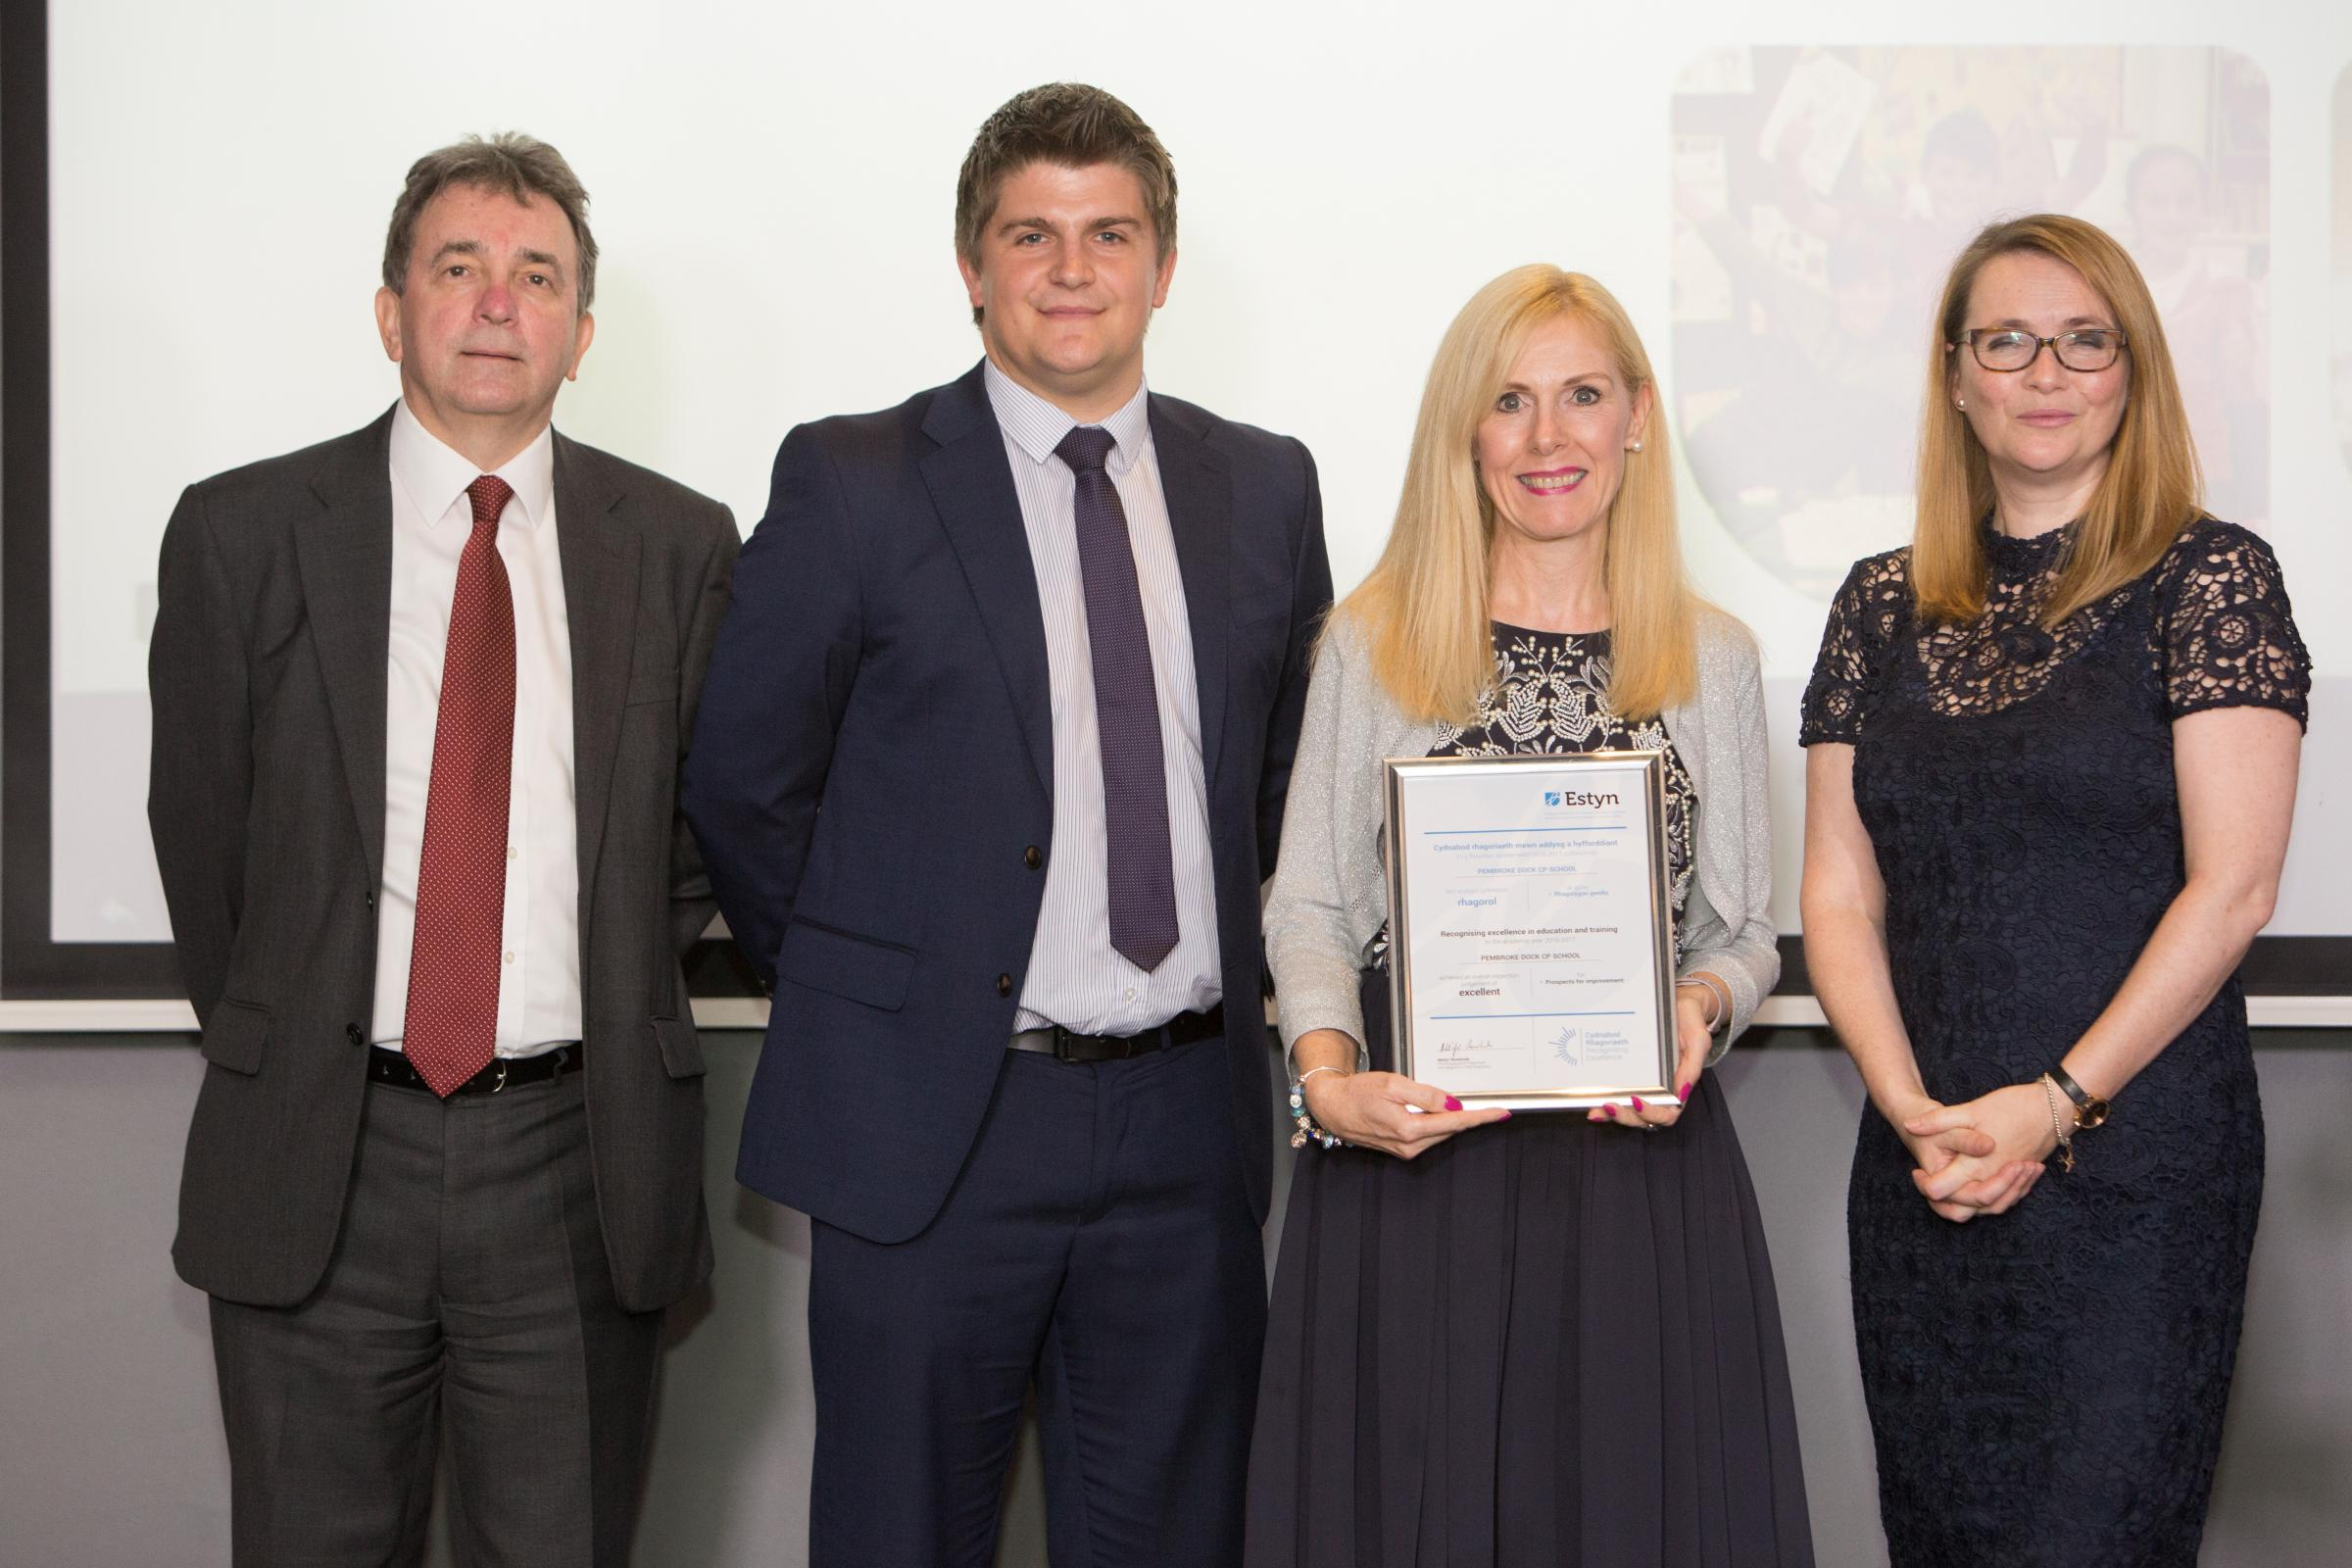 Pembroke Dock Community School Head teacher Michele Thomas Thomas (second from right) is pictured with the certificate alongside Deputy Head Stefan Jenkins, They are flanked by Mr Rowlands and Mrs Kirsty Williams.